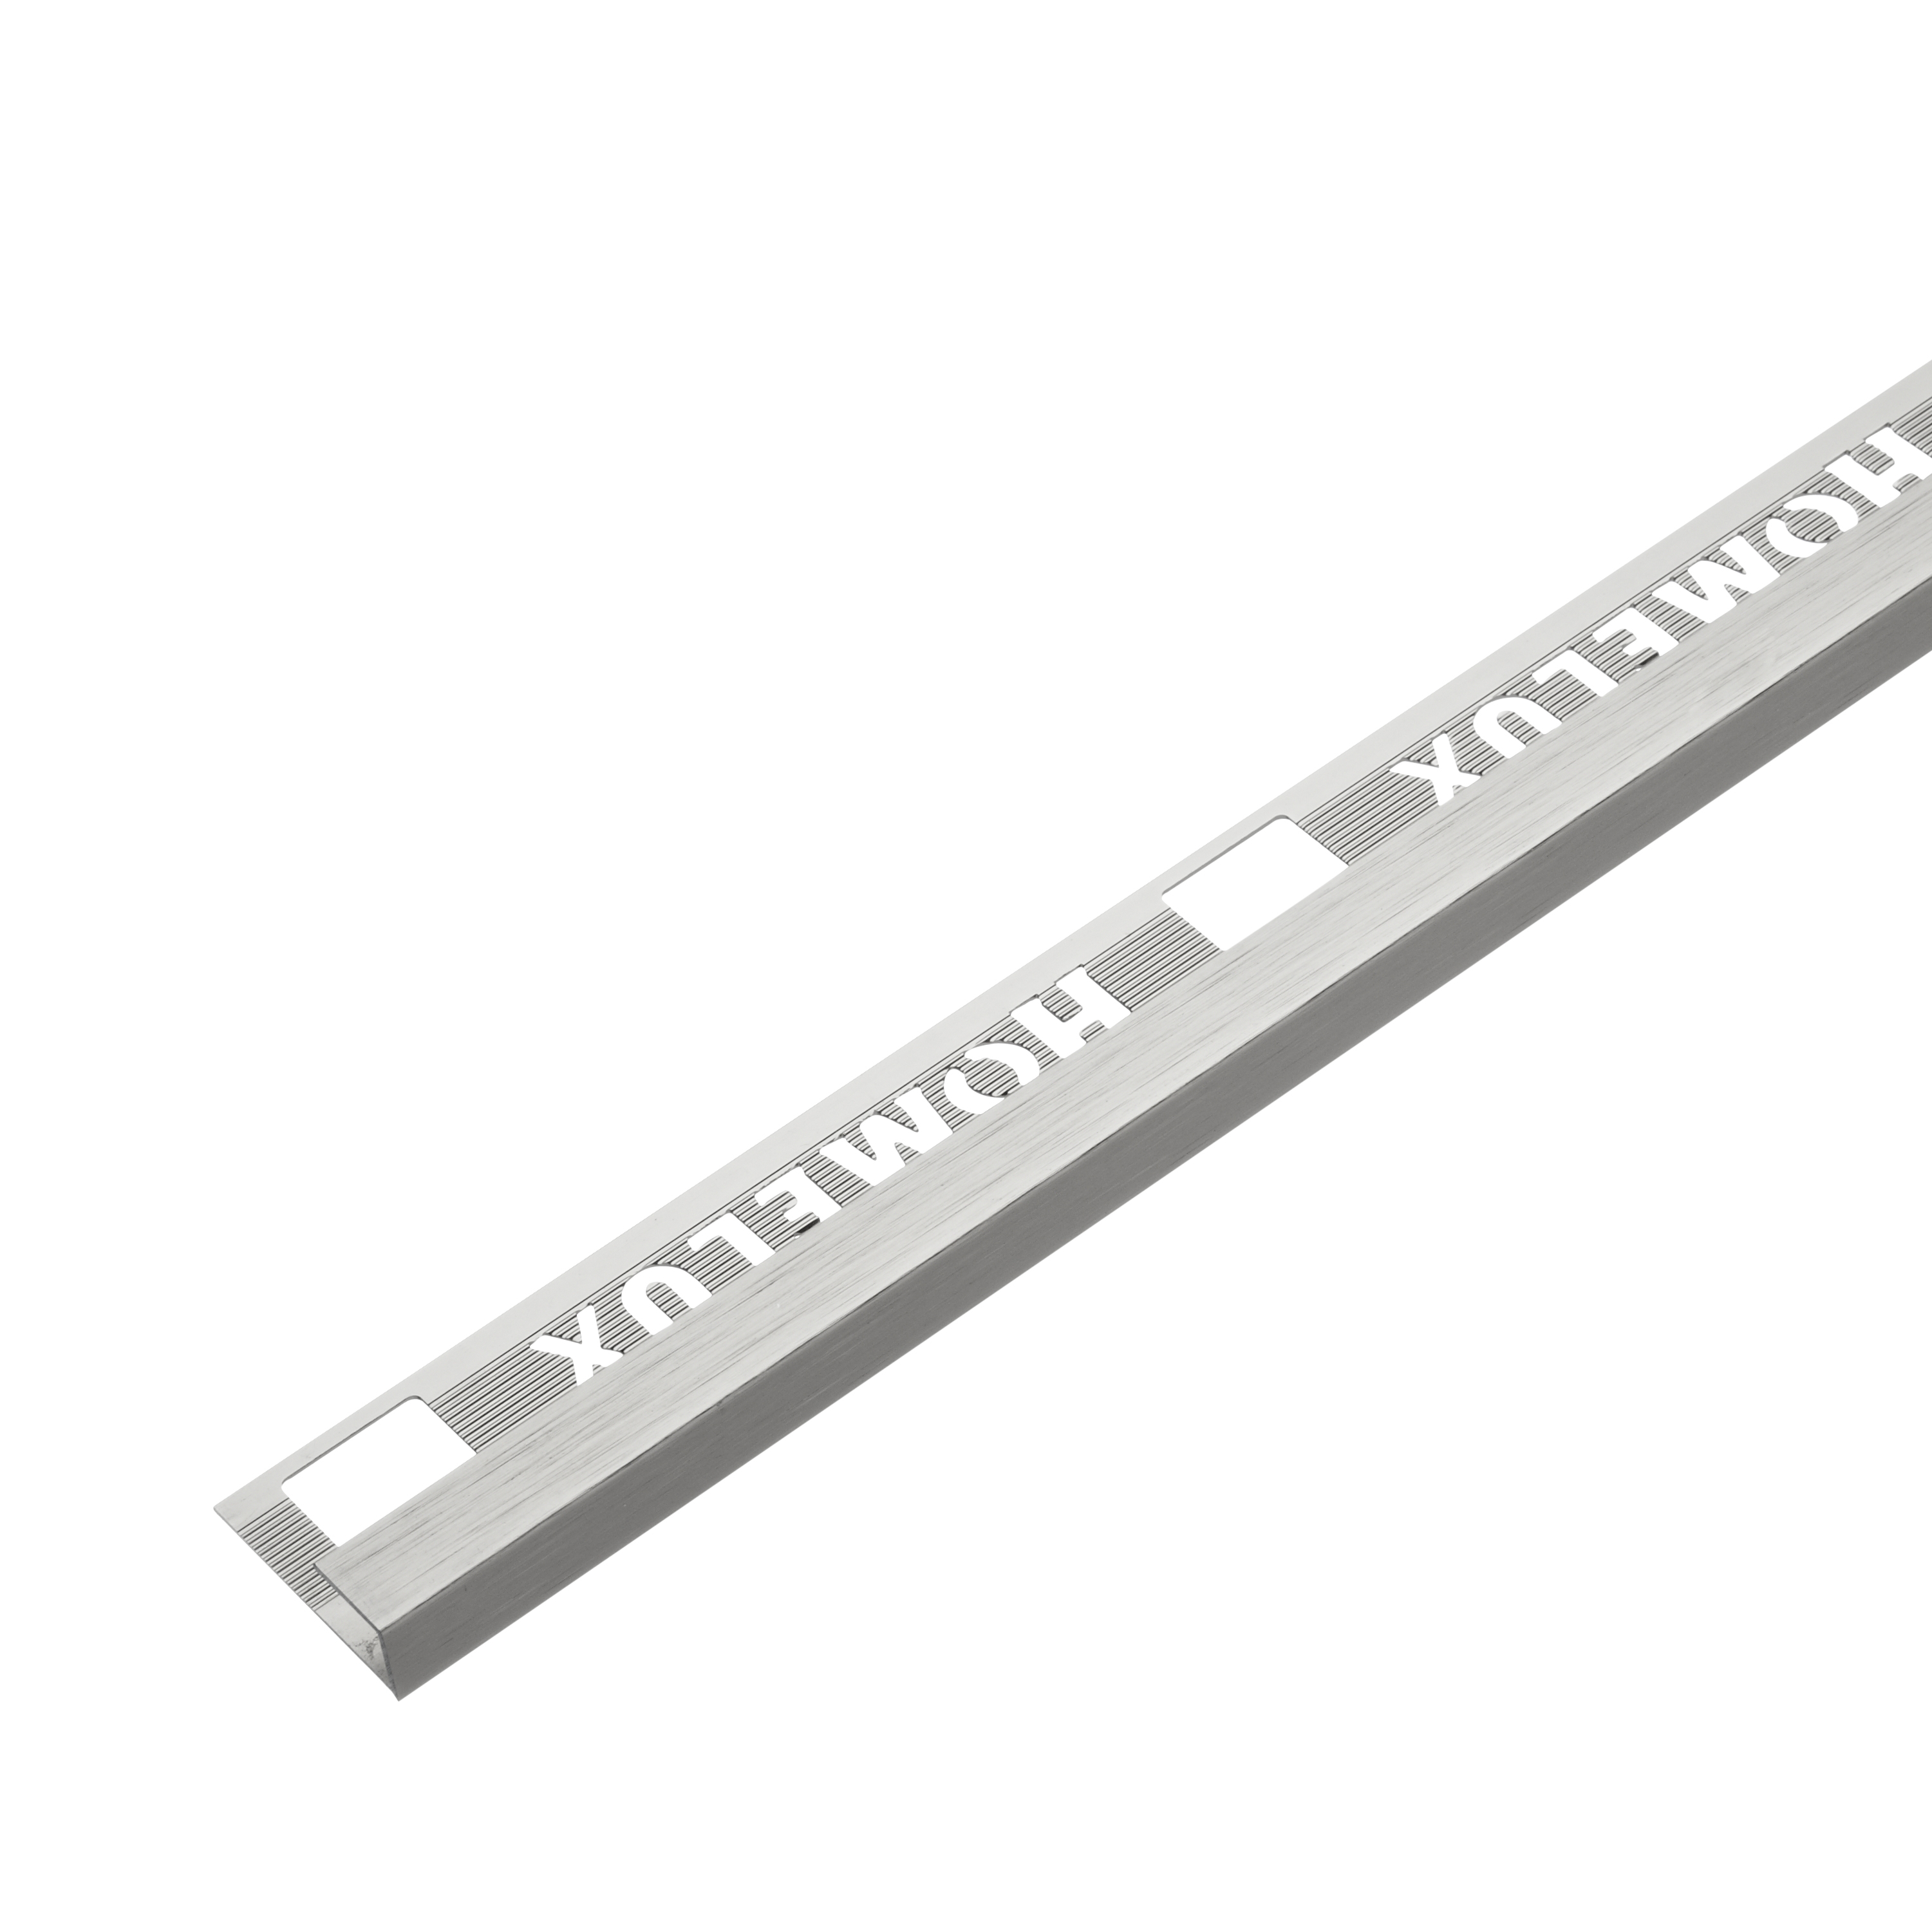 9mm Stainless Steel Effect Metal Square Edge 2.5m